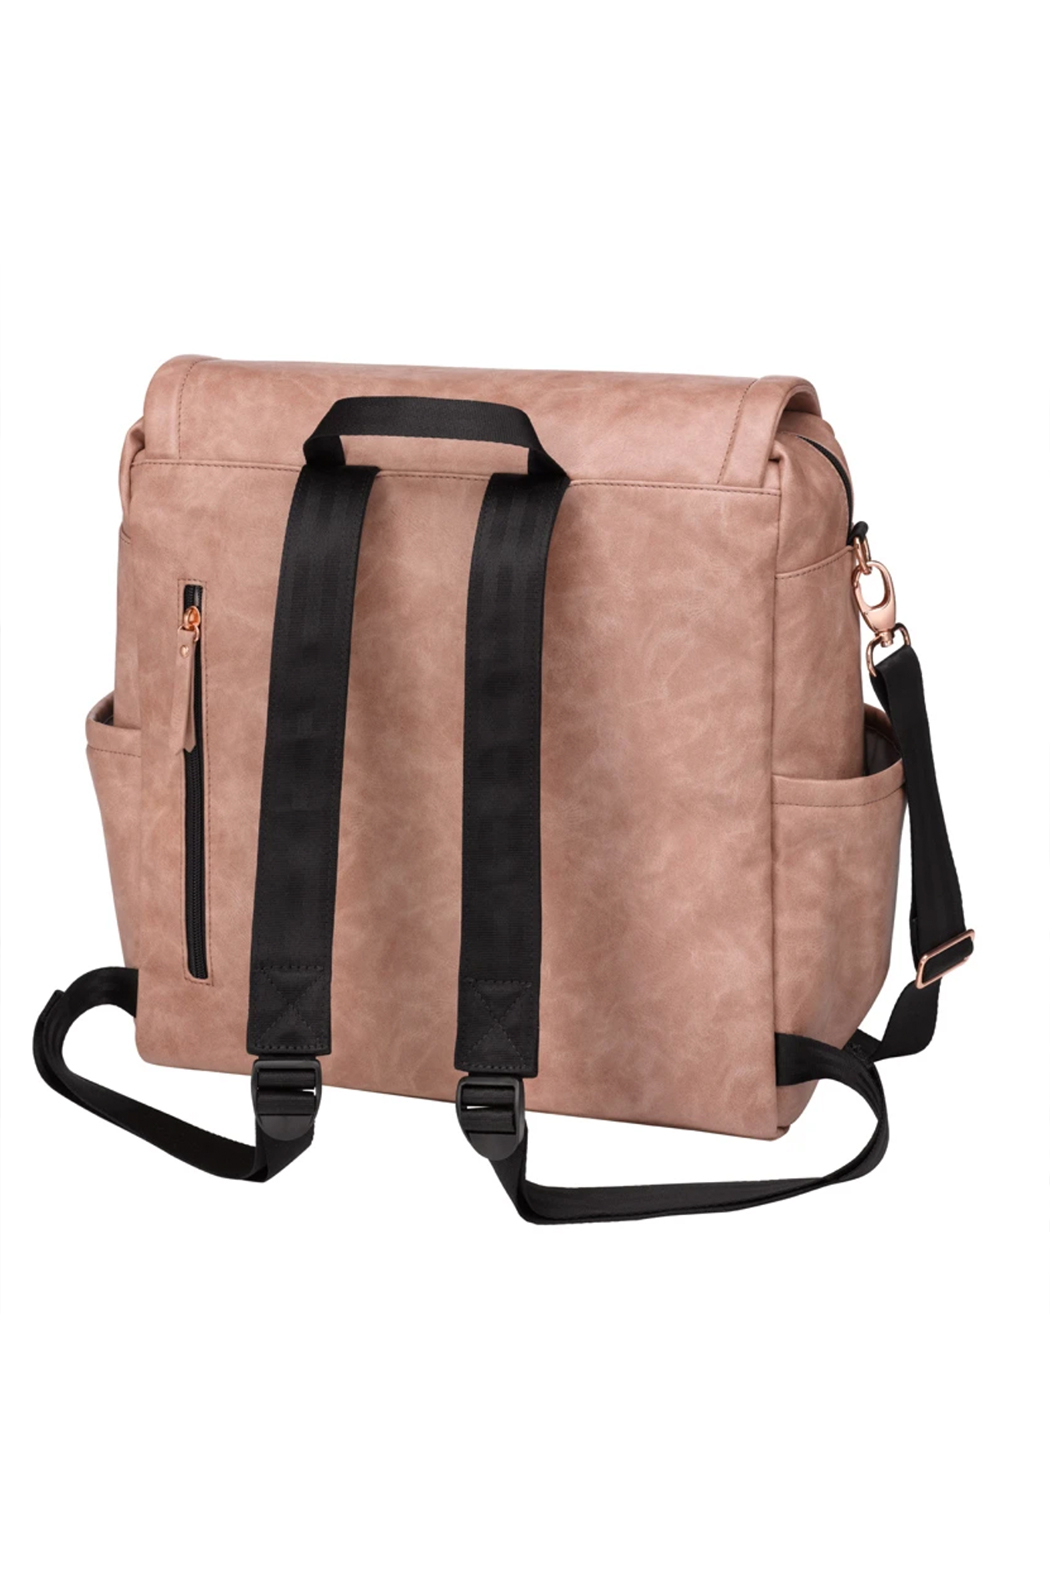 Petunia Pickle Bottom Boxy Backpack - Dusy Rose Leatherette - Side Cropped Image